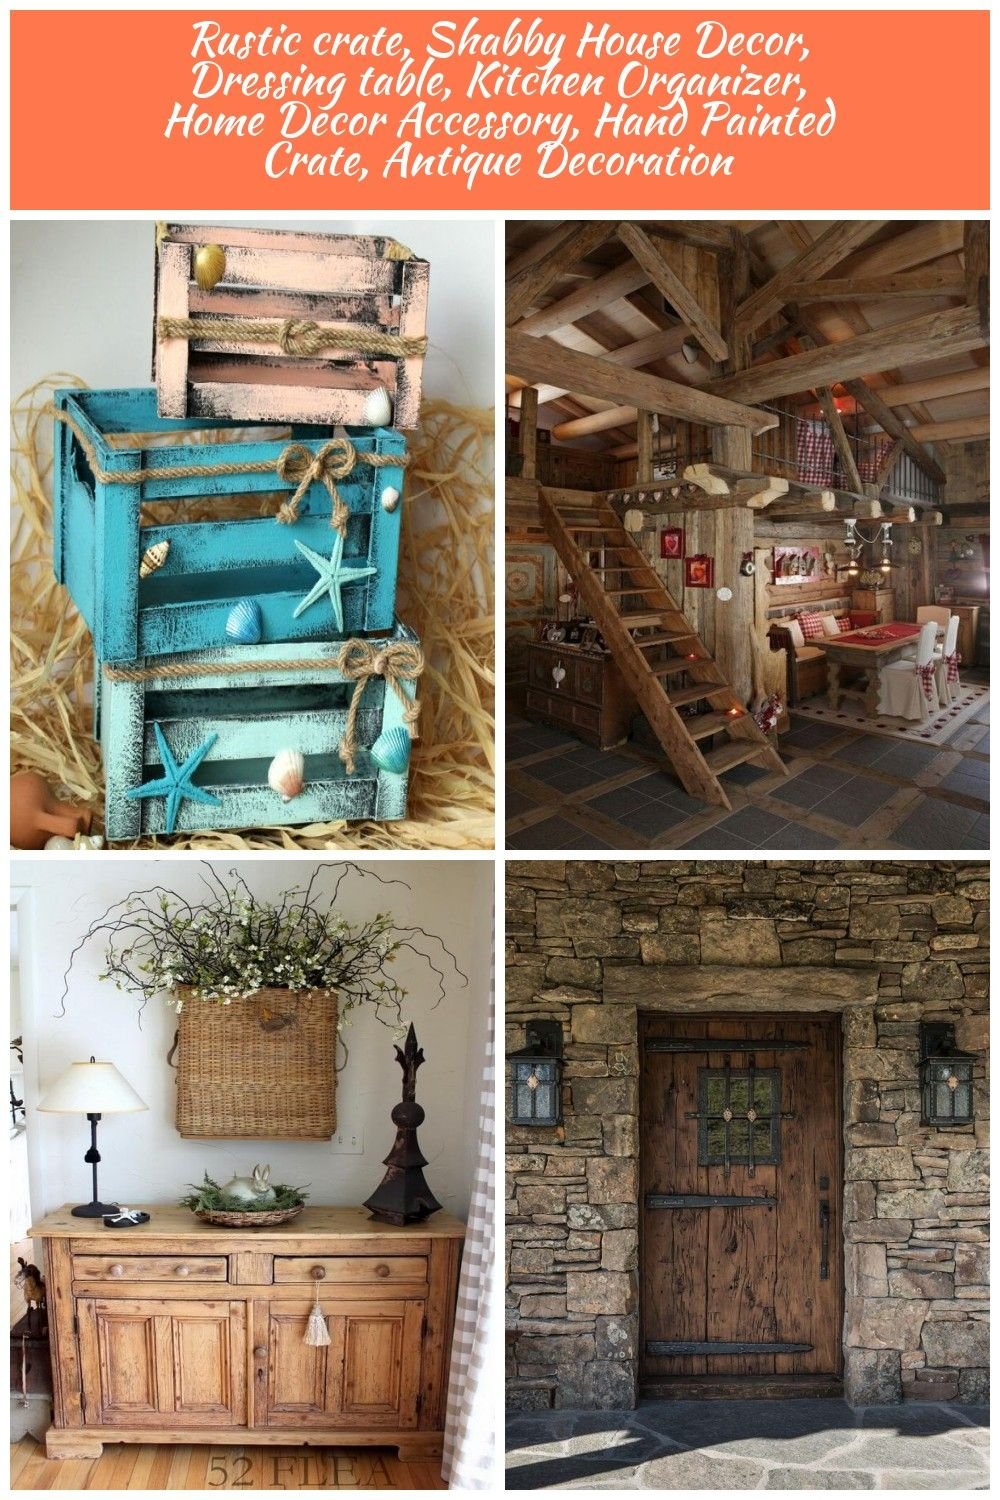 Rustic Crates Set Of 3 Crates Shabby House Decor Nautical Wooden Crates Kitchen Organizer Home Decor Accessory W Home Decor Accessories Cabin Decor Decor